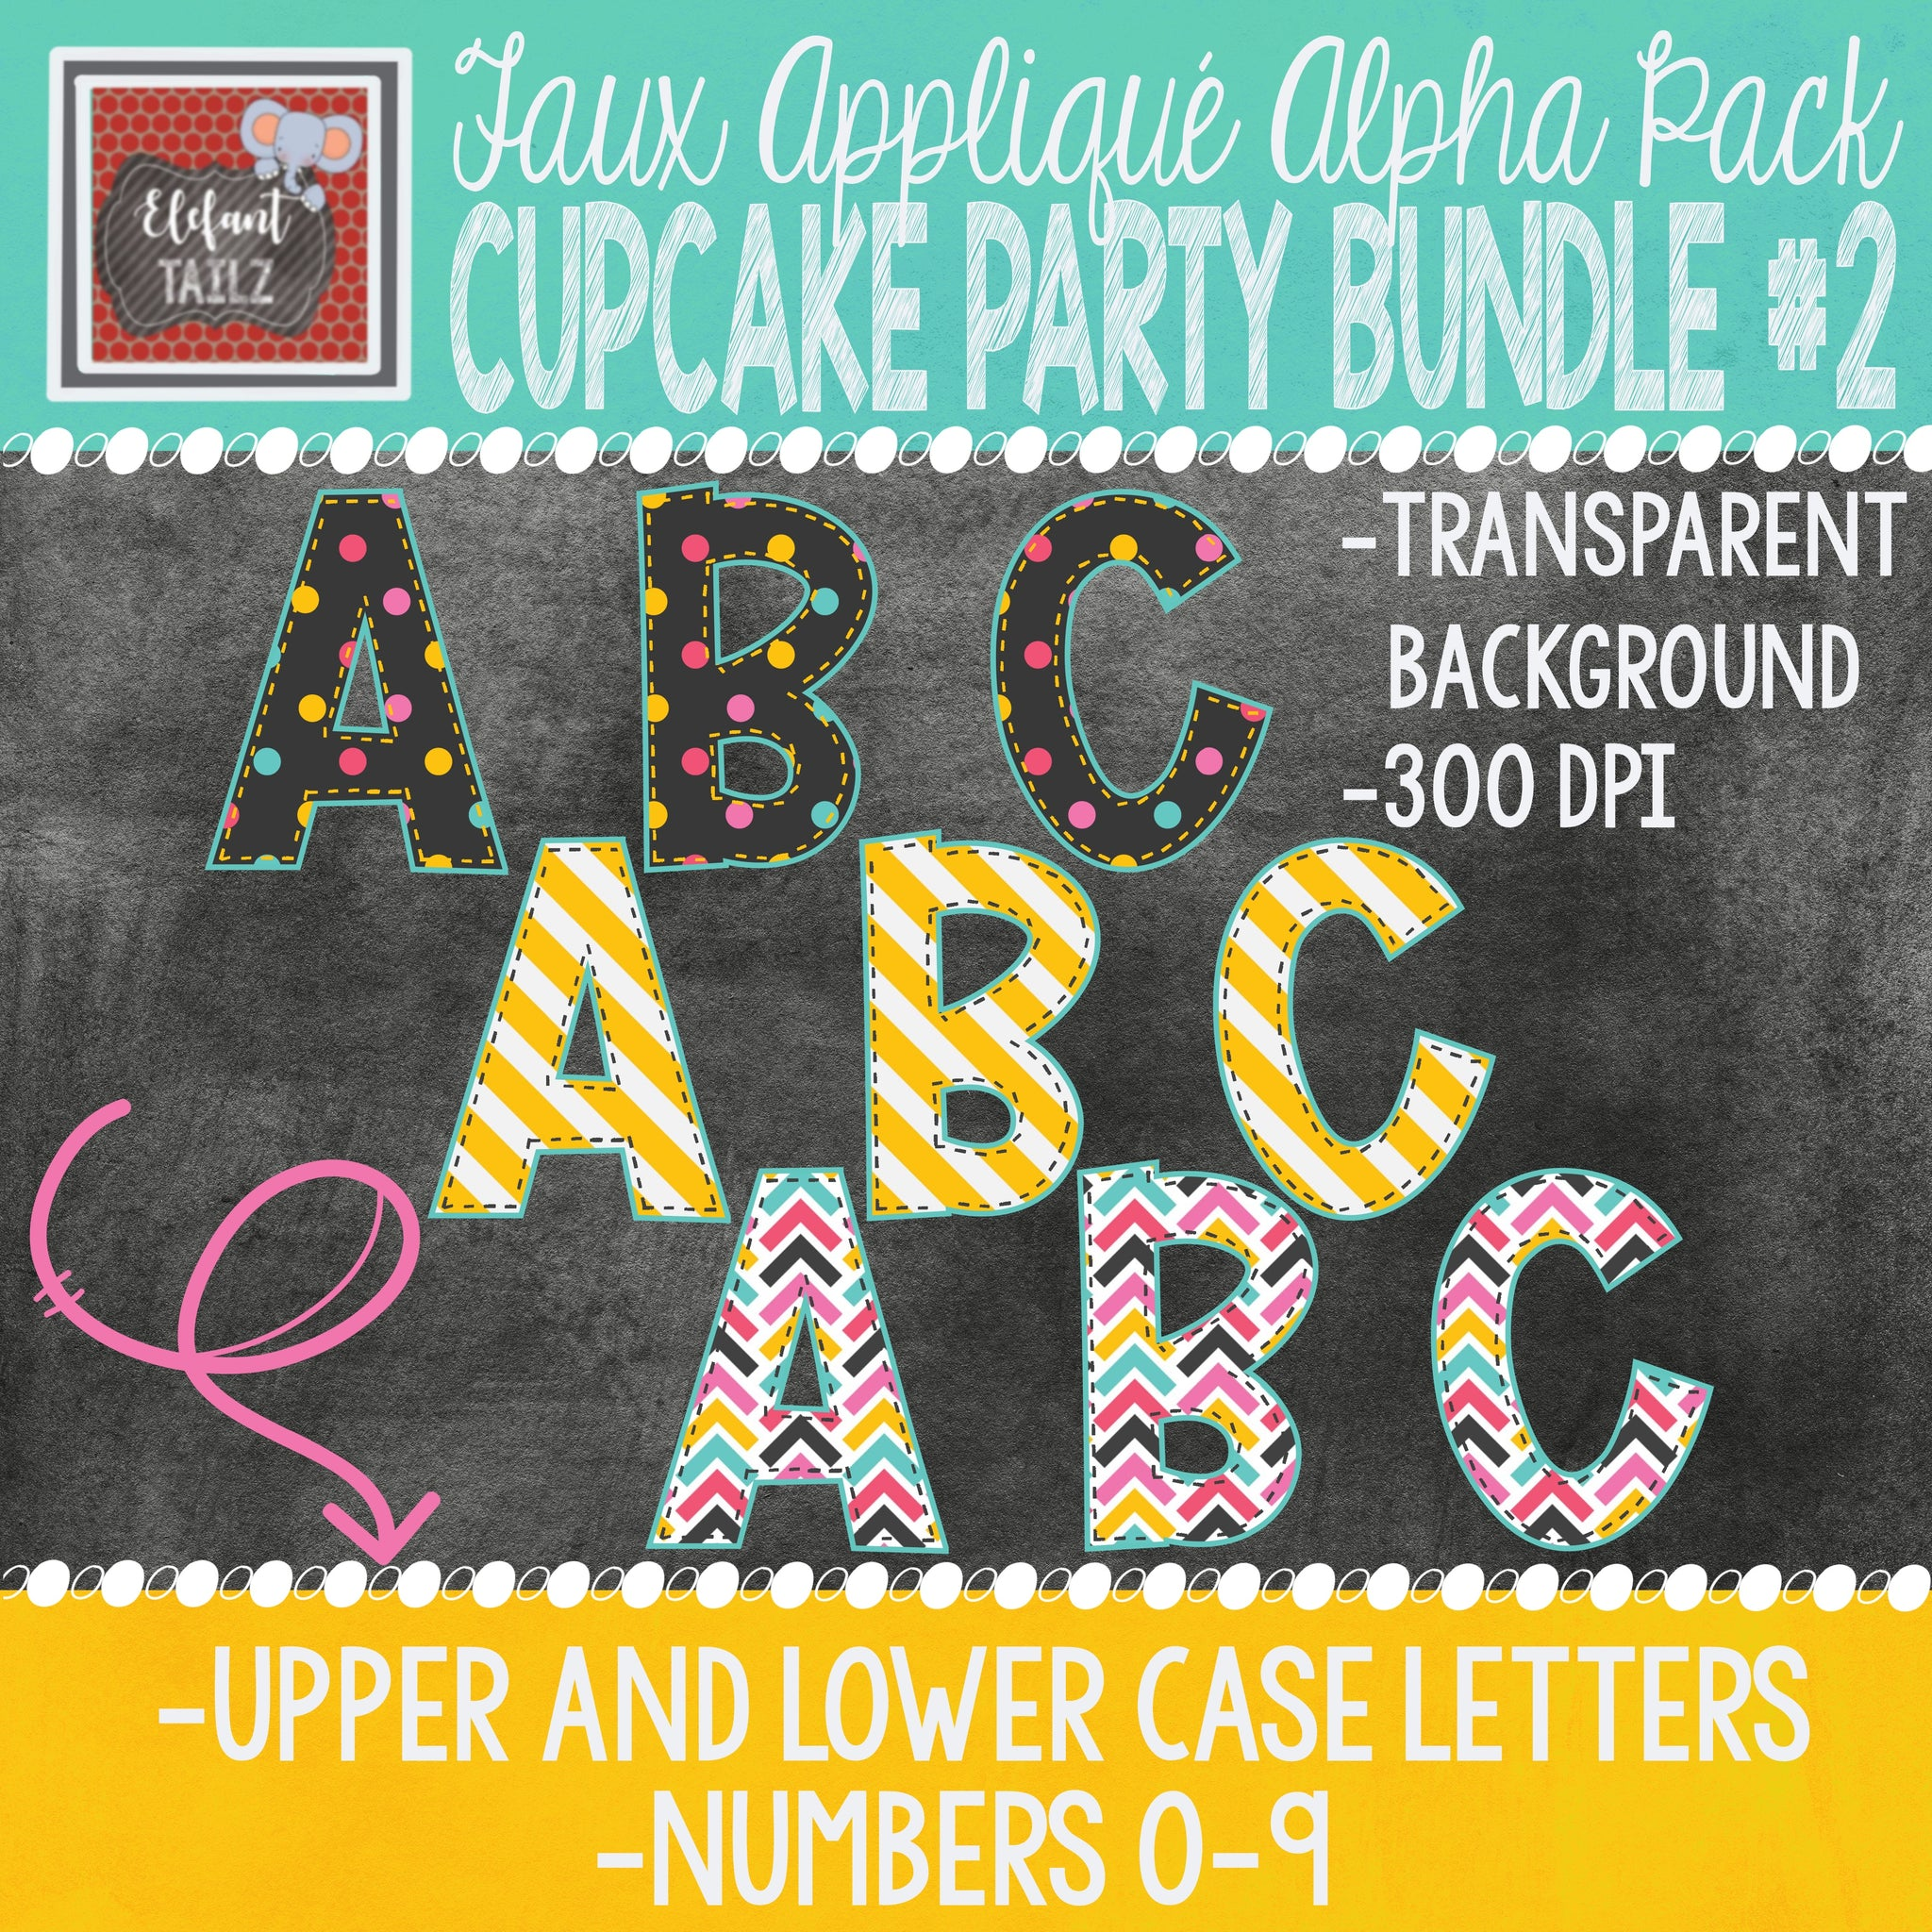 Alpha & Number Pack - Cupcake Party BUNDLE #2